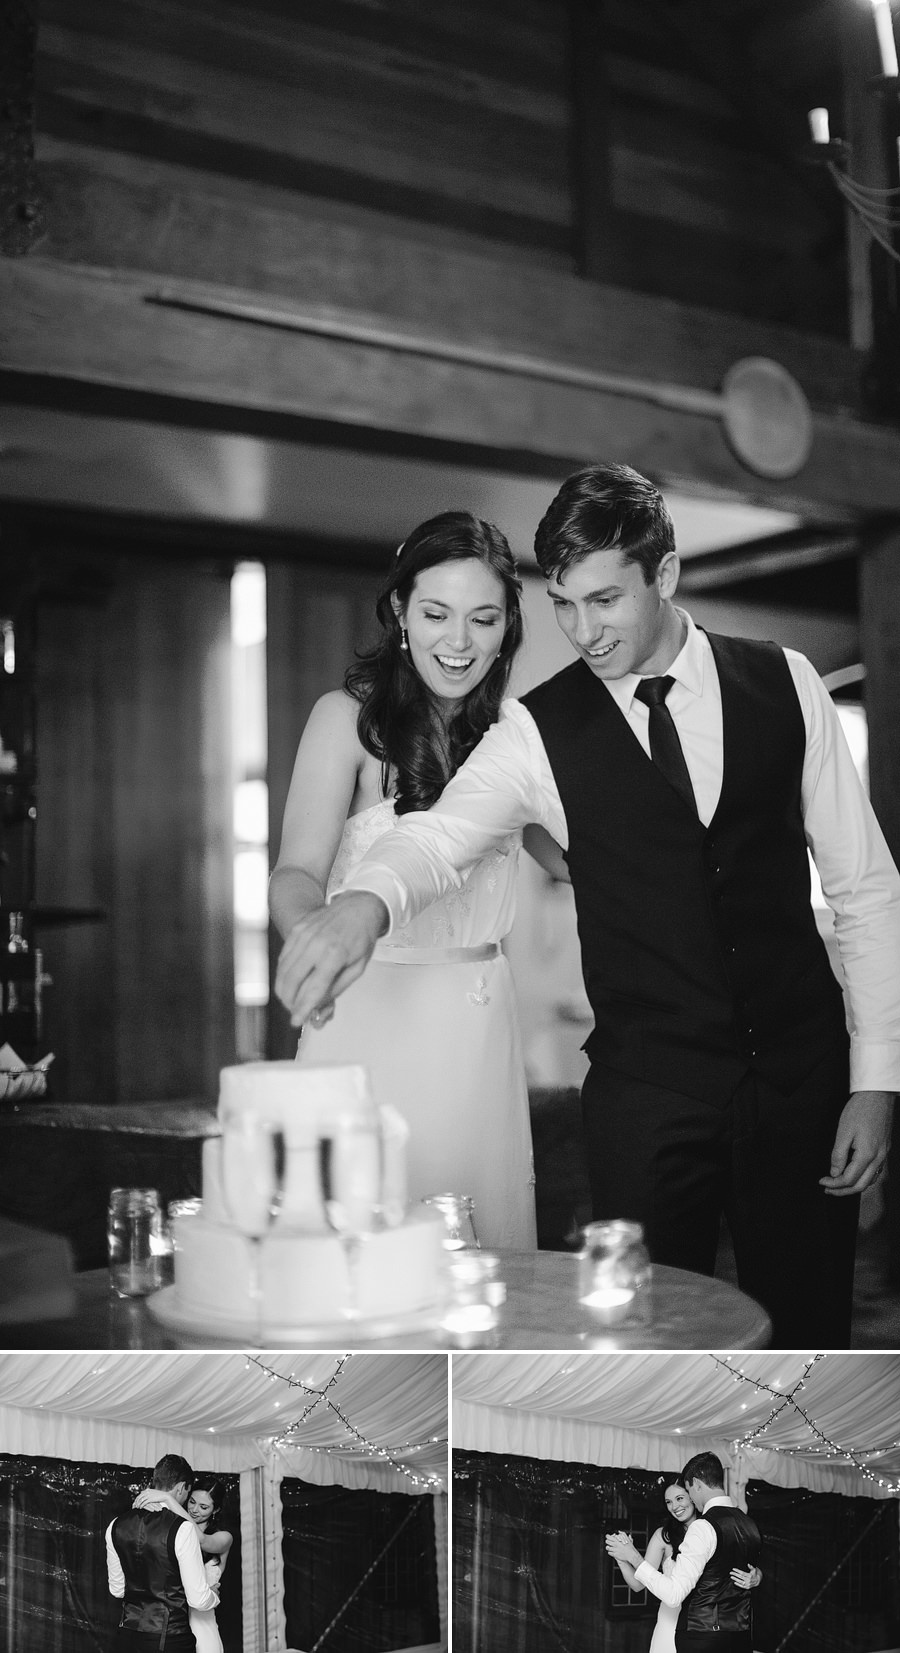 Sydney Wedding Photography: Bride & groom cutting cake